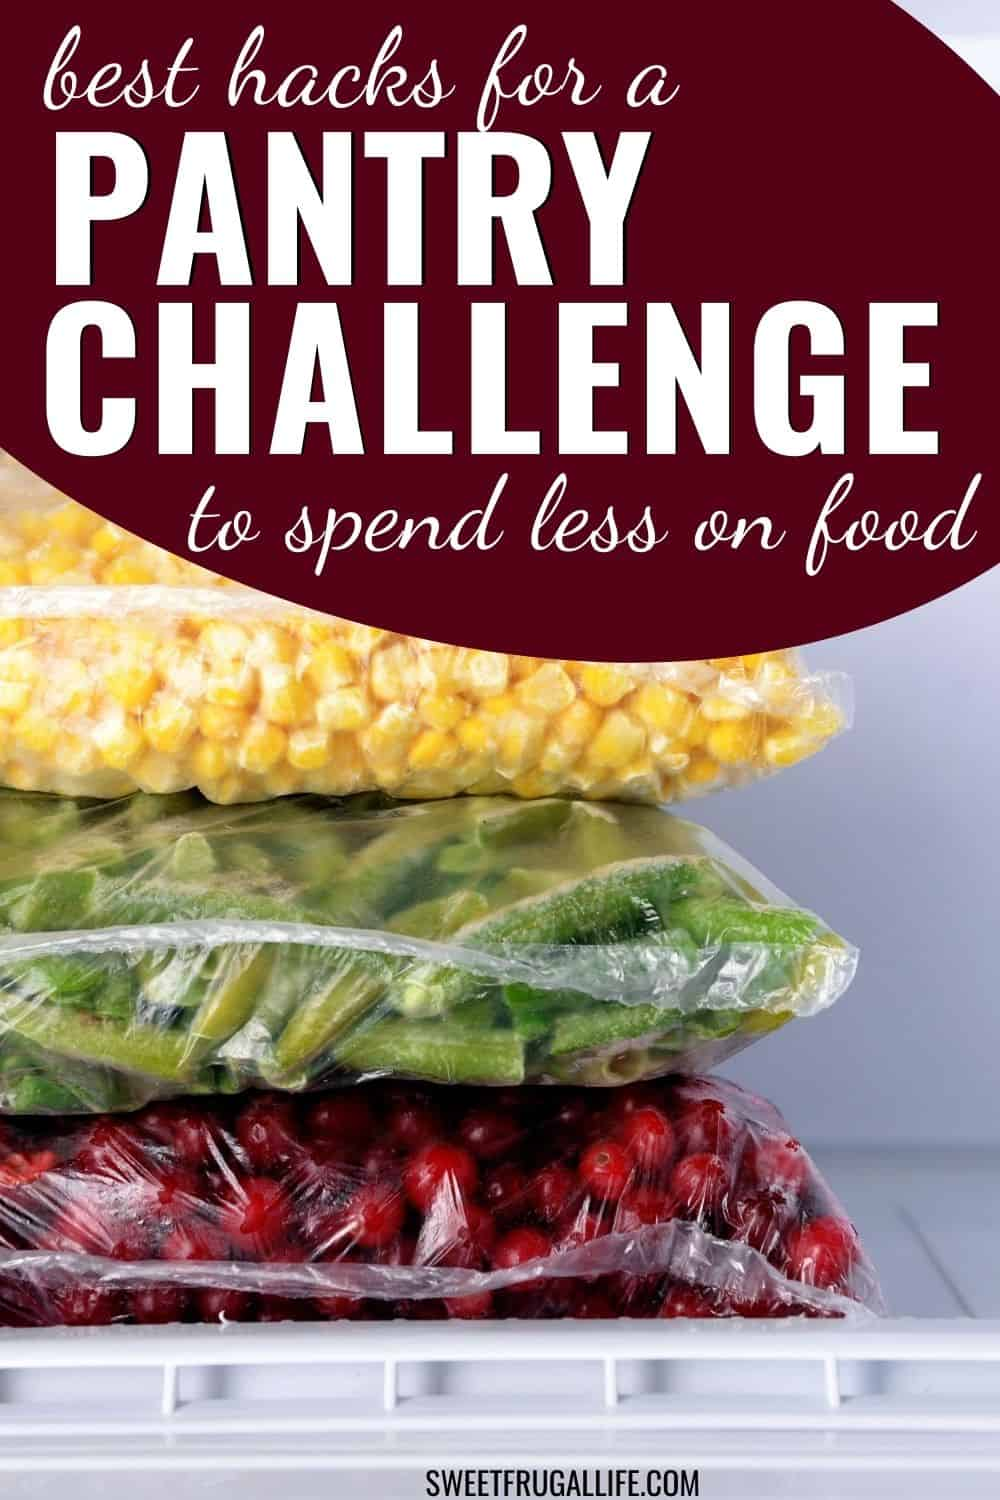 tips for a pantry challenge - save money on food